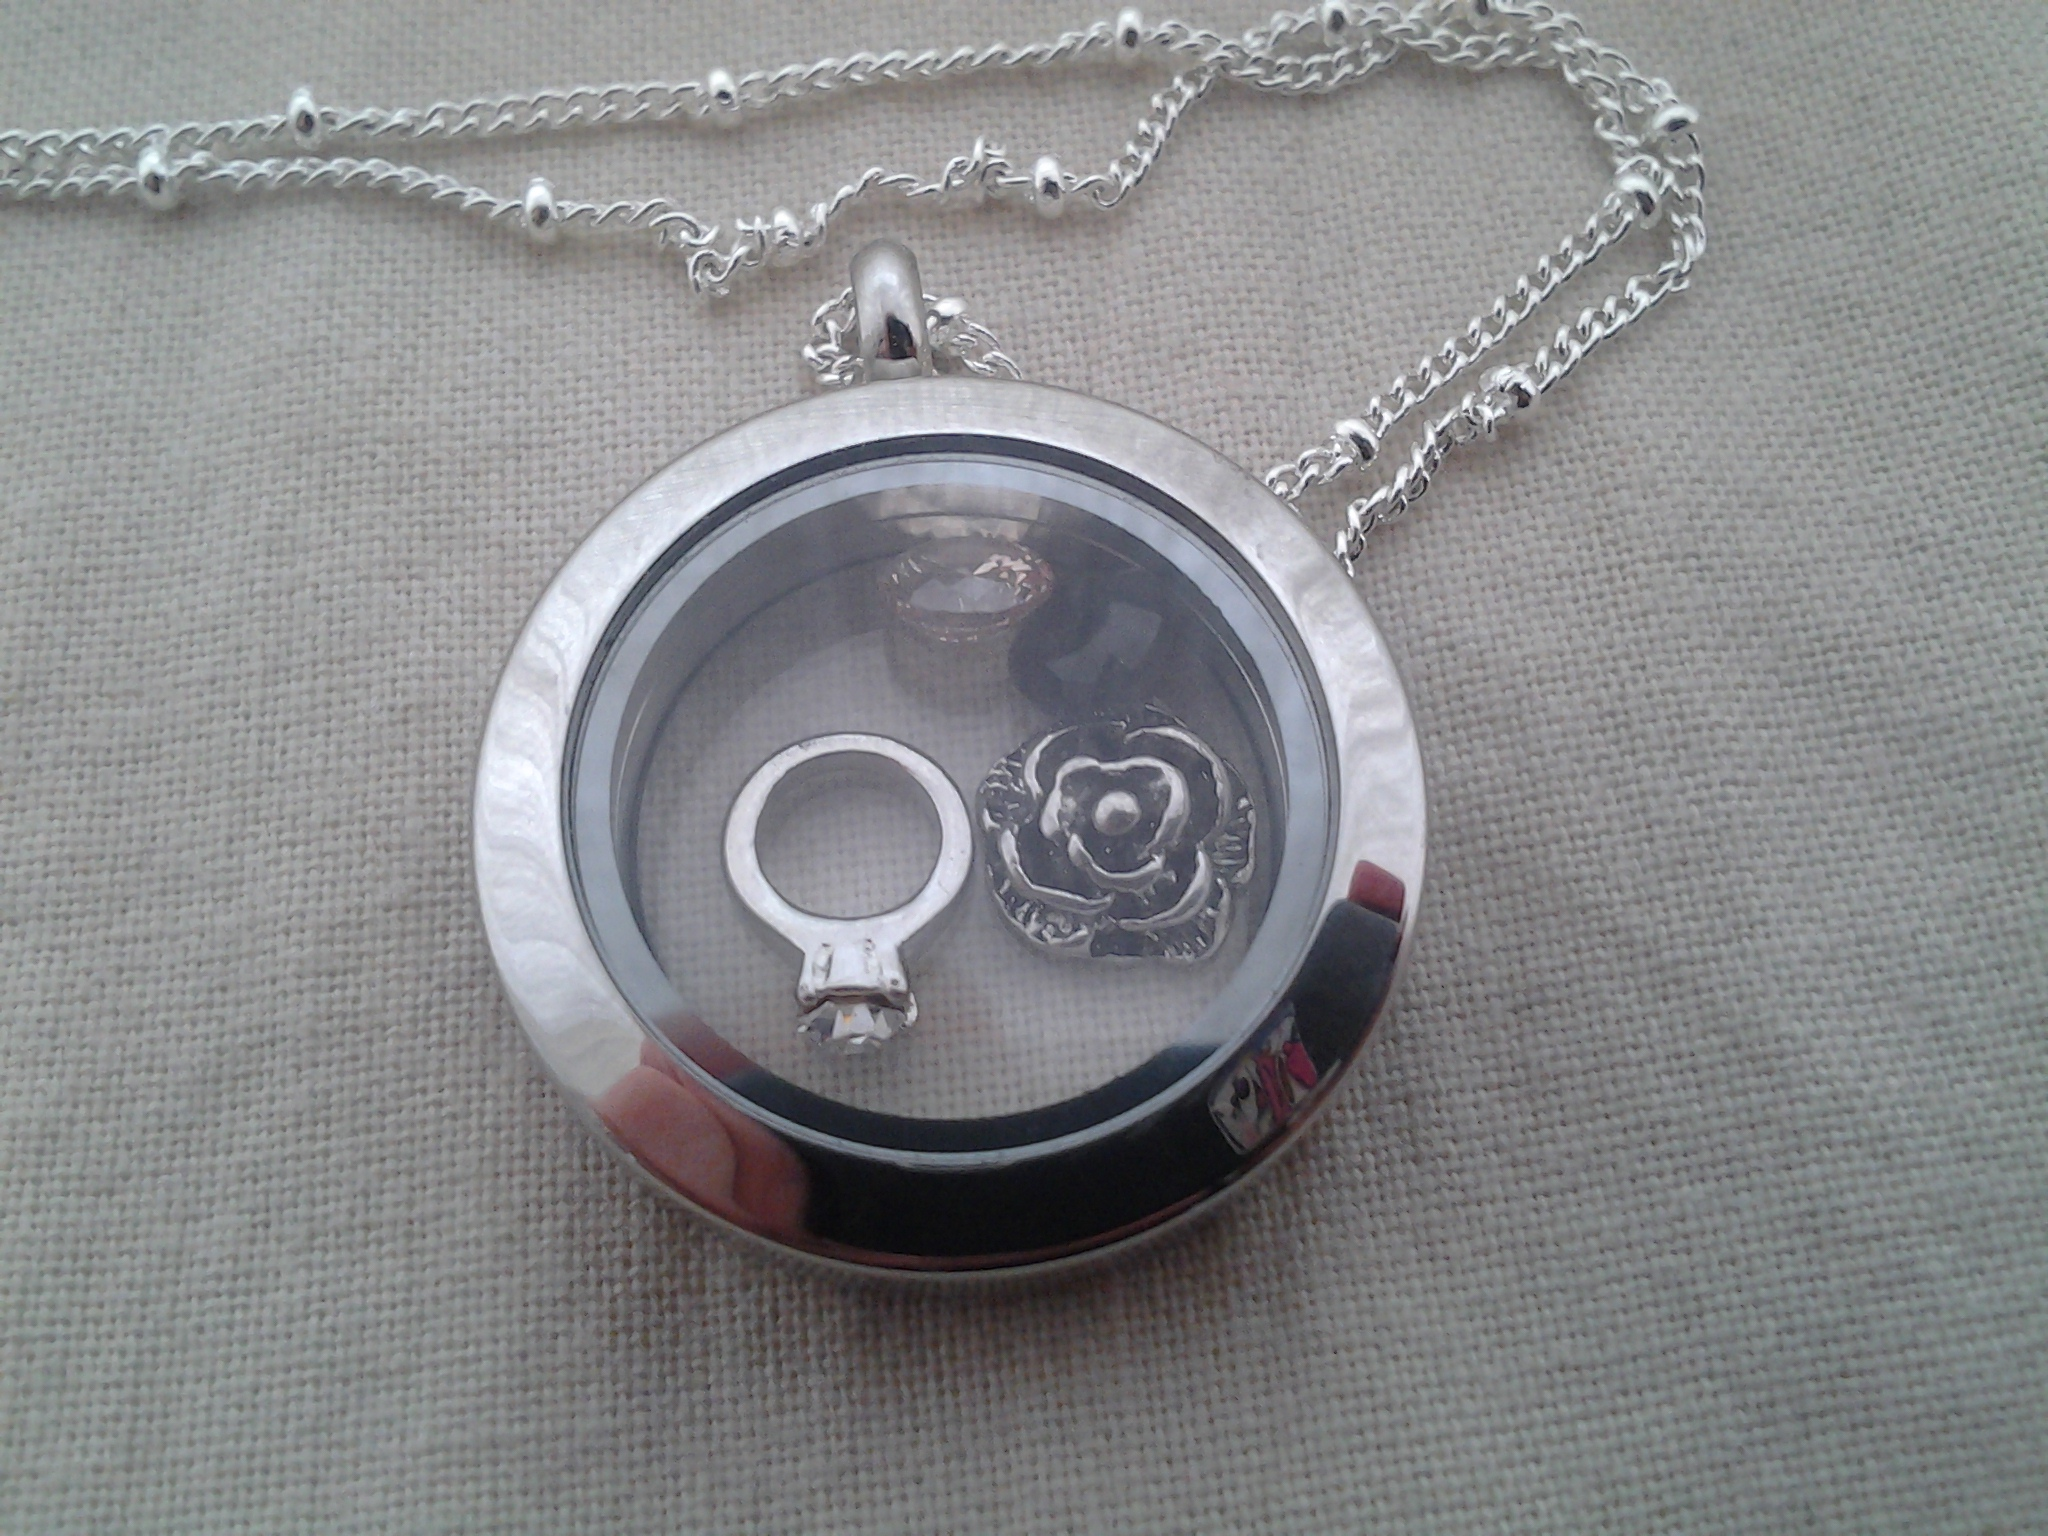 Origami Owl Living Locket Review | Emily Reviews - photo#30